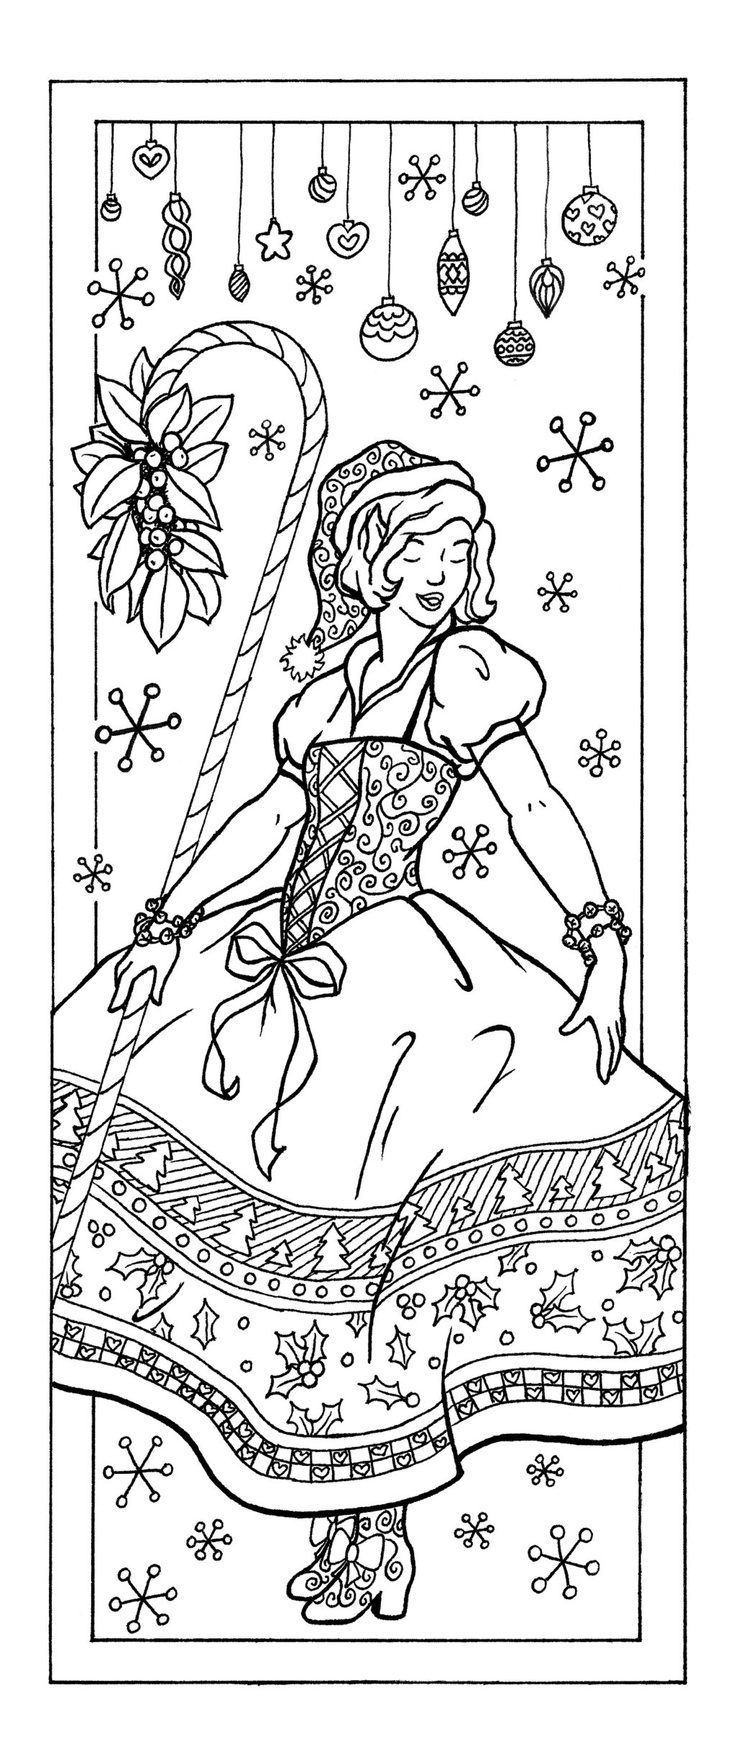 Christmas Elf Coloring Page (bookmark) *Fits one half sheet of paper (print 2?)